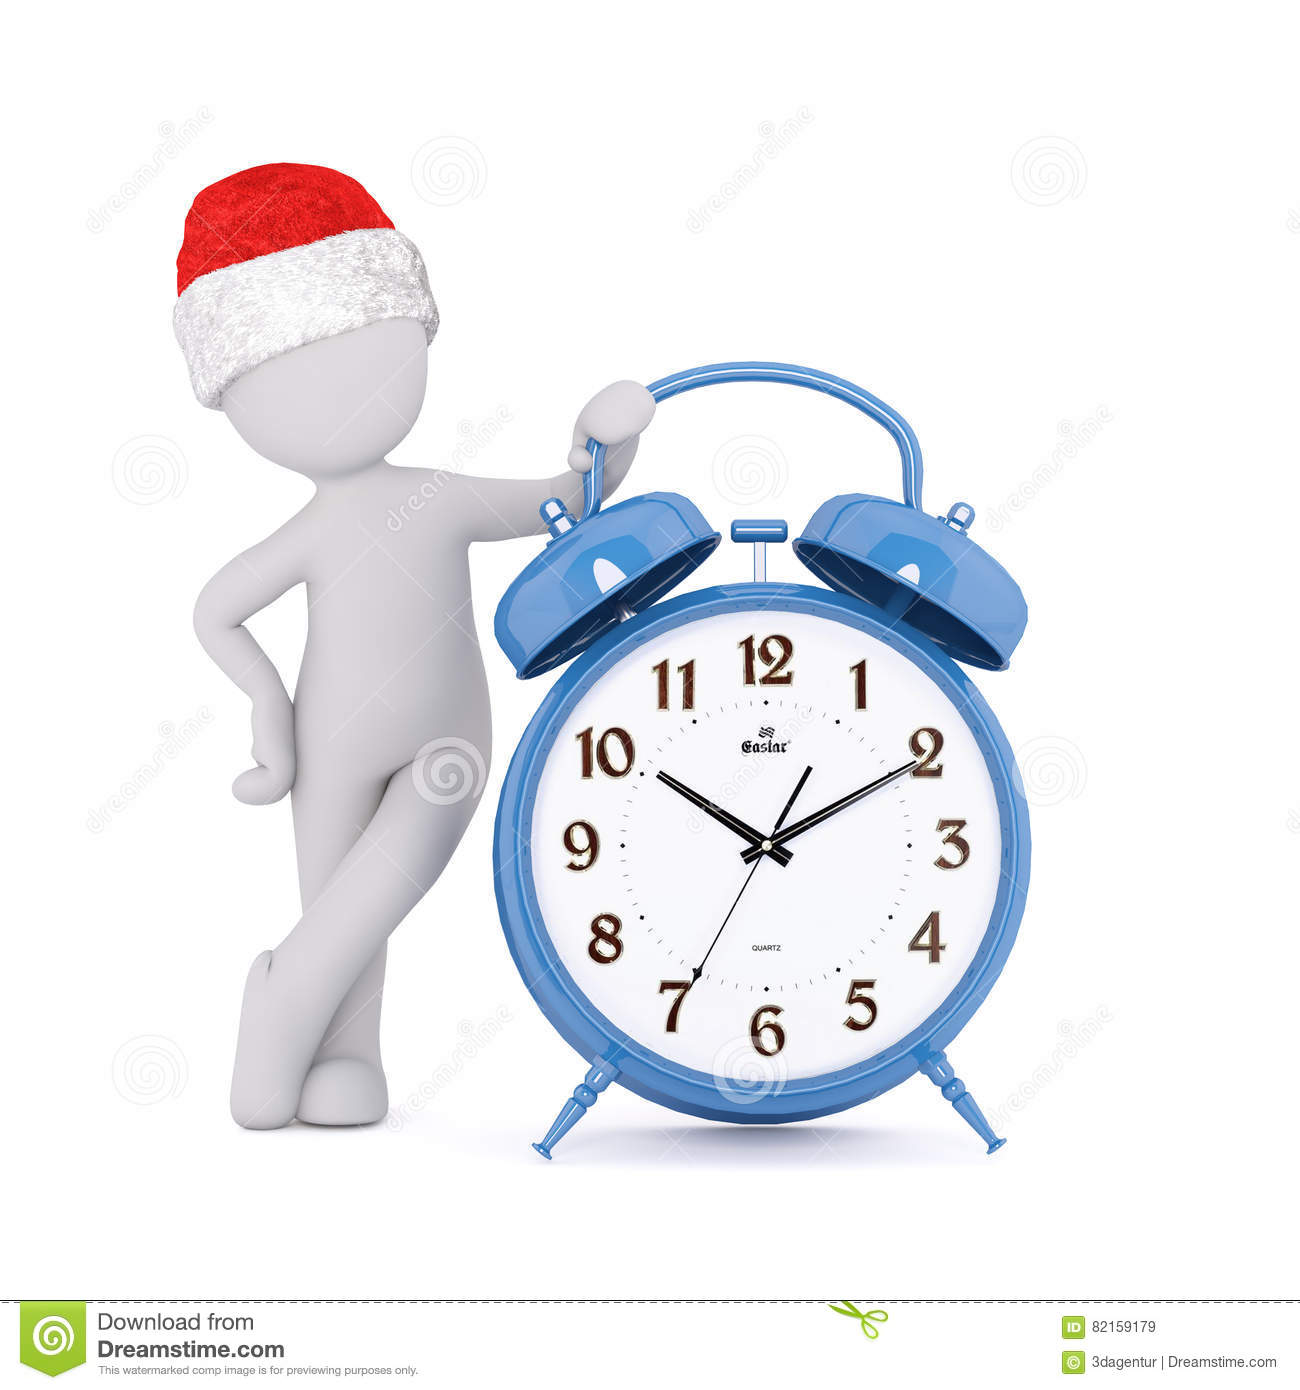 0e5b2079afeaa Festive 3d man in a Santa hat leaning on a blue alarm clock with bells  showing the time